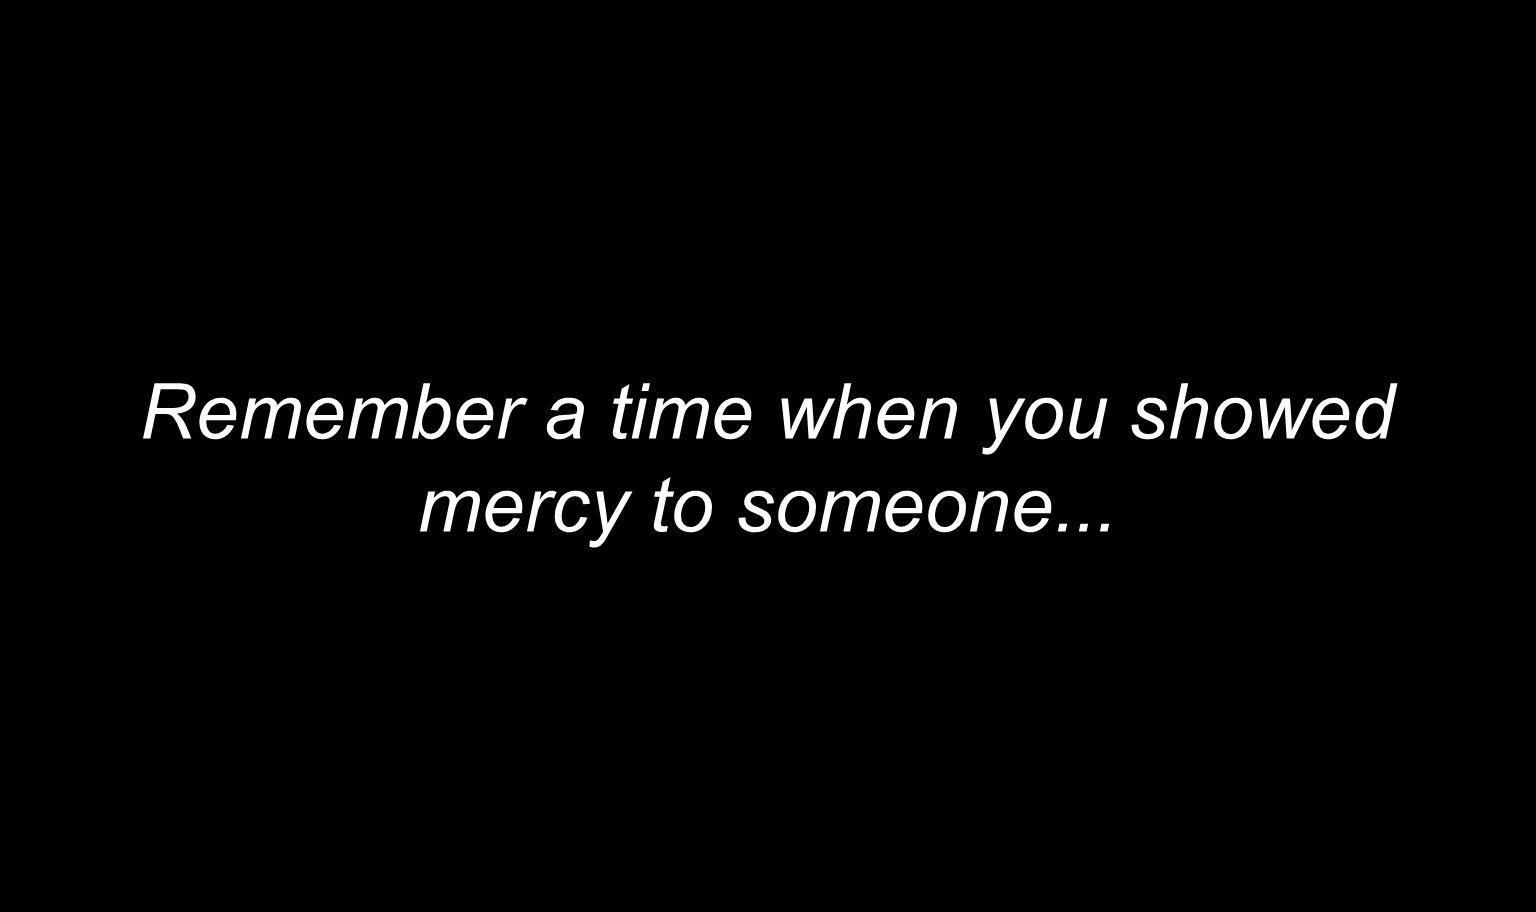 Remember a time when you showed mercy to someone...